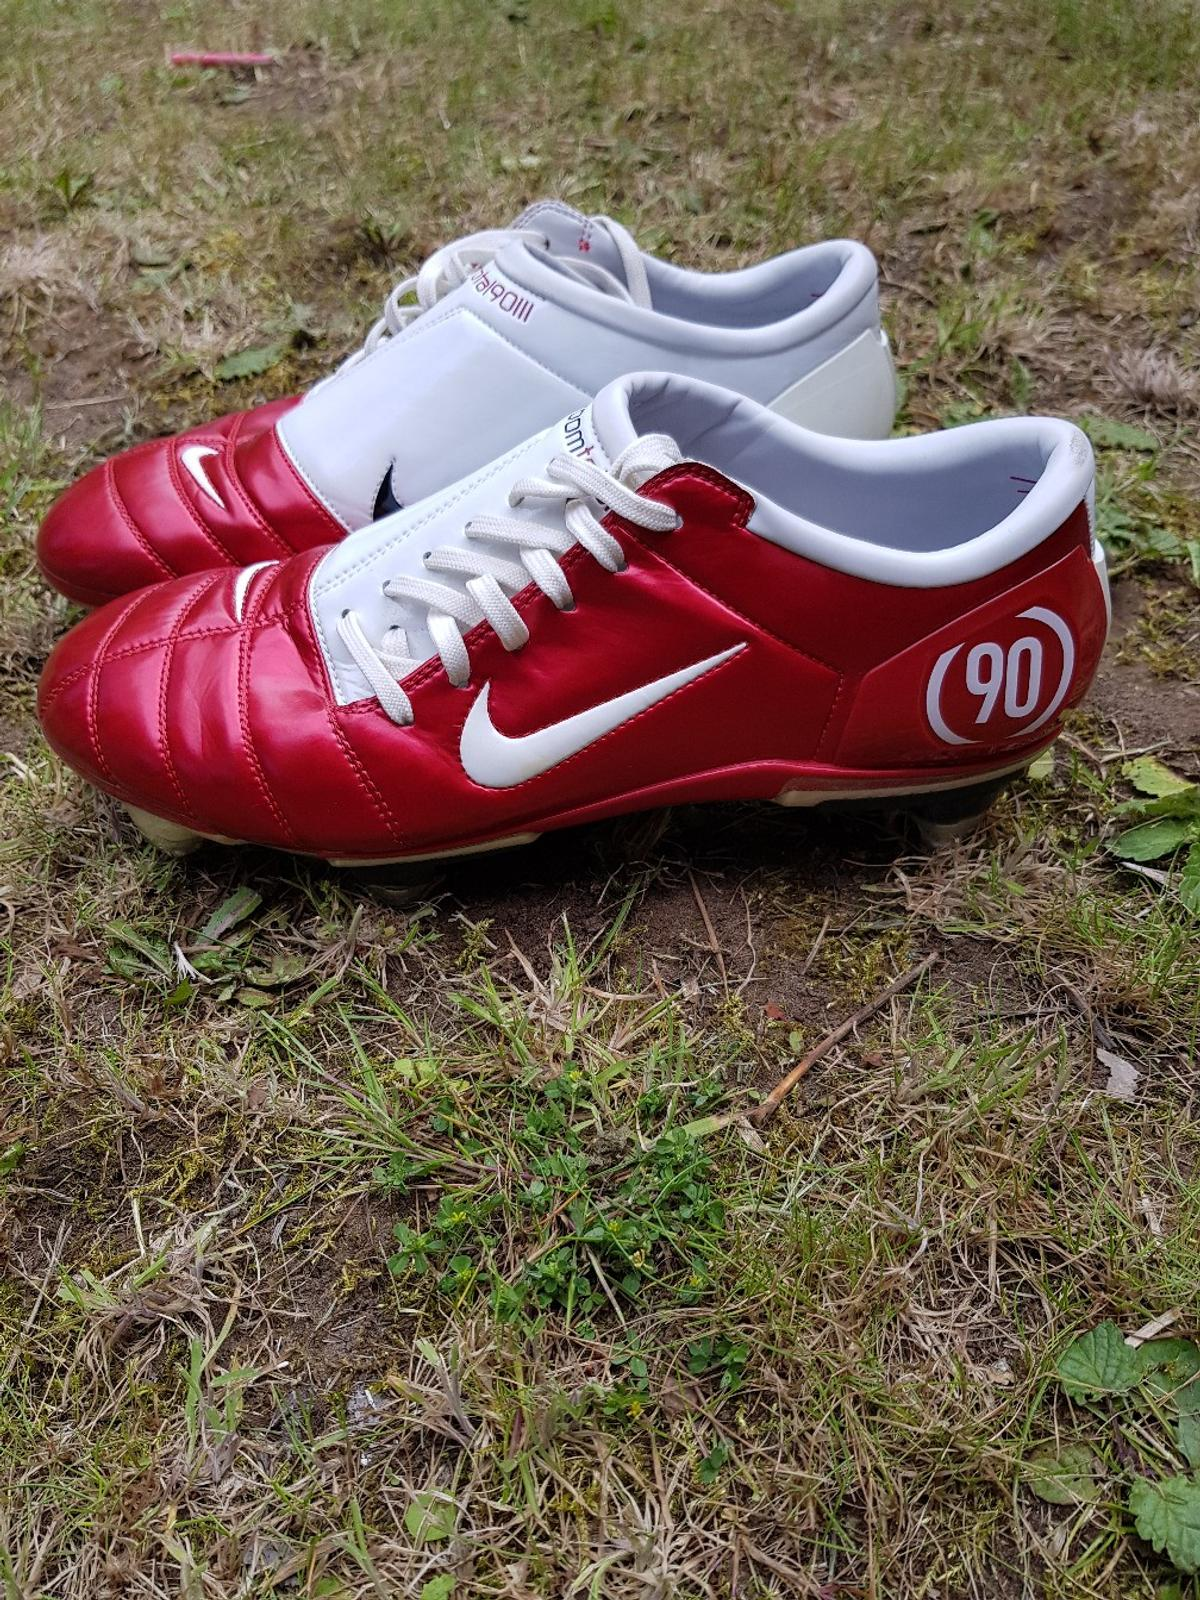 new style 1a9d5 68d73 Nike Total 90 Air Zoom III Football Boots in Selby for ...